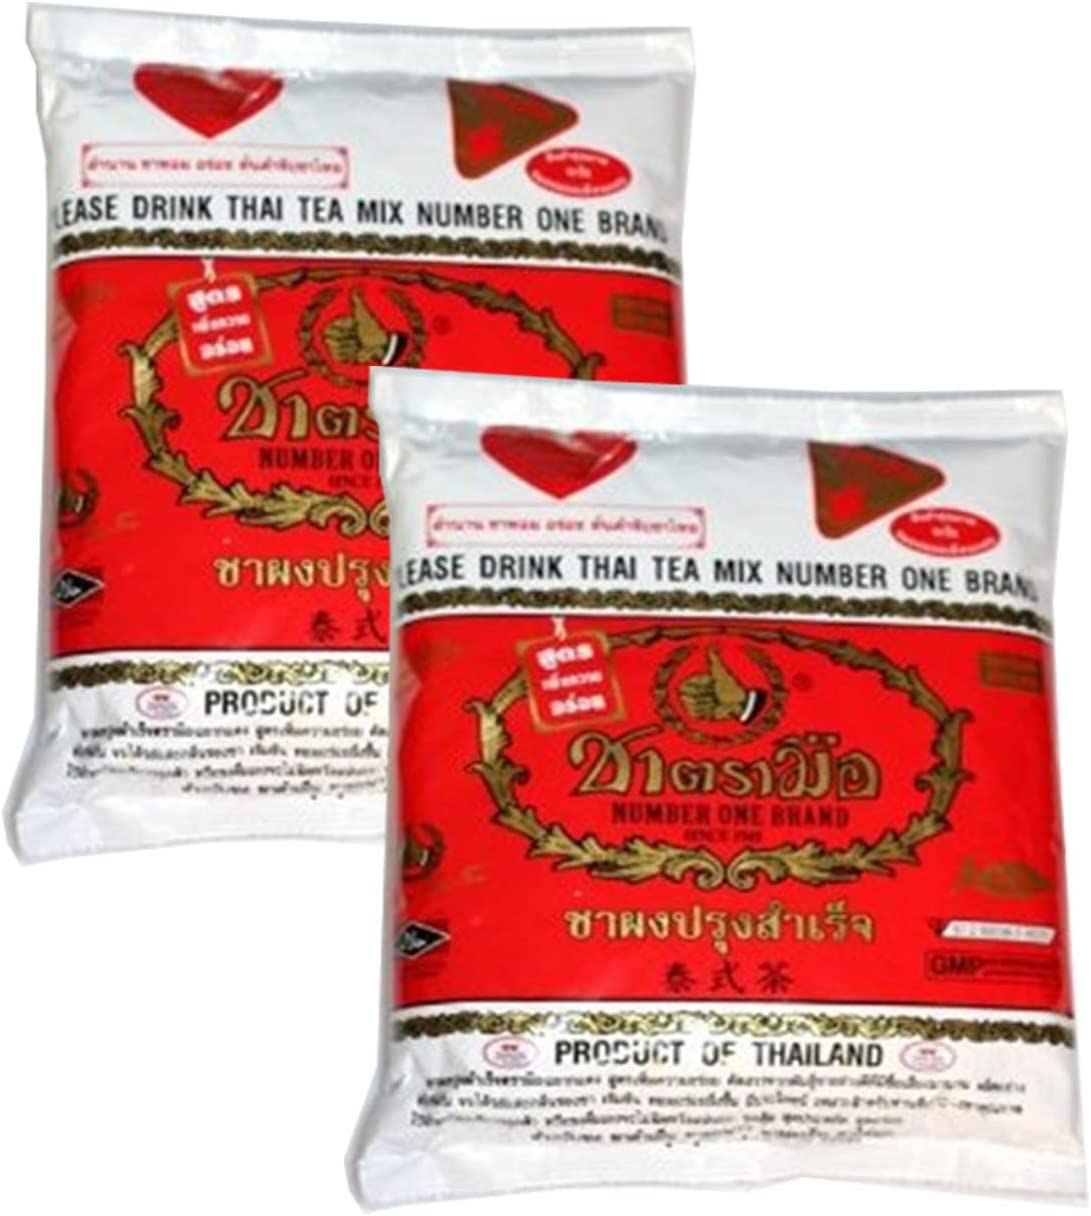 2 X The Original Thai Iced Tea Mix ~ Number One Brand Imported From Thailand! 400g Bag Great for Restaurants That Want to Serve Authentic and High Quality Thai Iced Teas 800 gm (28.20 oz)